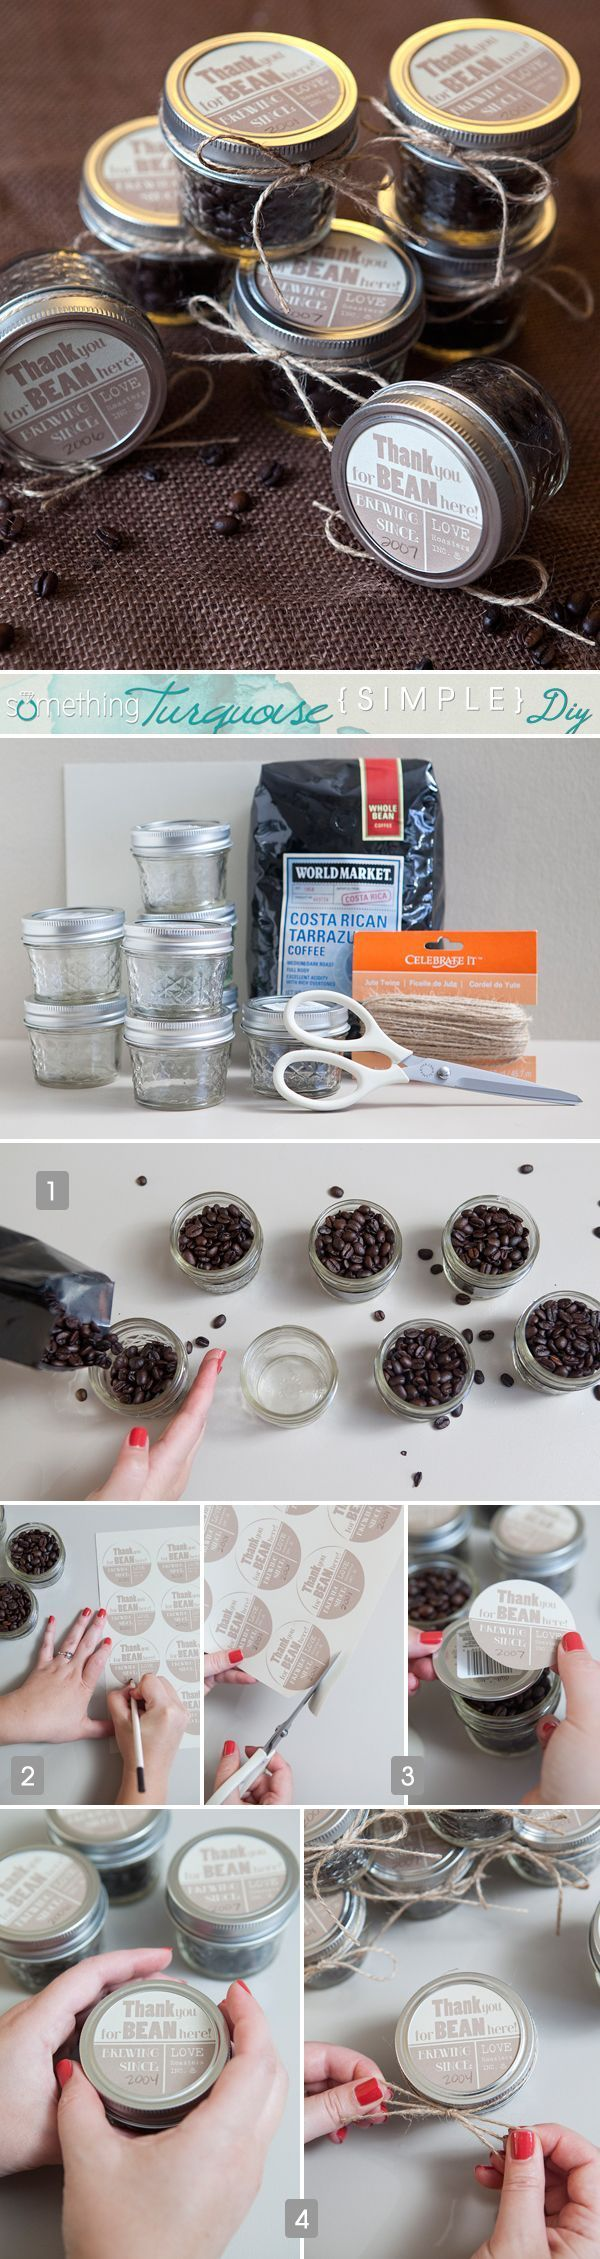 Simple DIY | Coffee Jar Favors Or use little plastic bags and put out different types of chocolate covered coffee beans and regular coffee beans in large bowls.